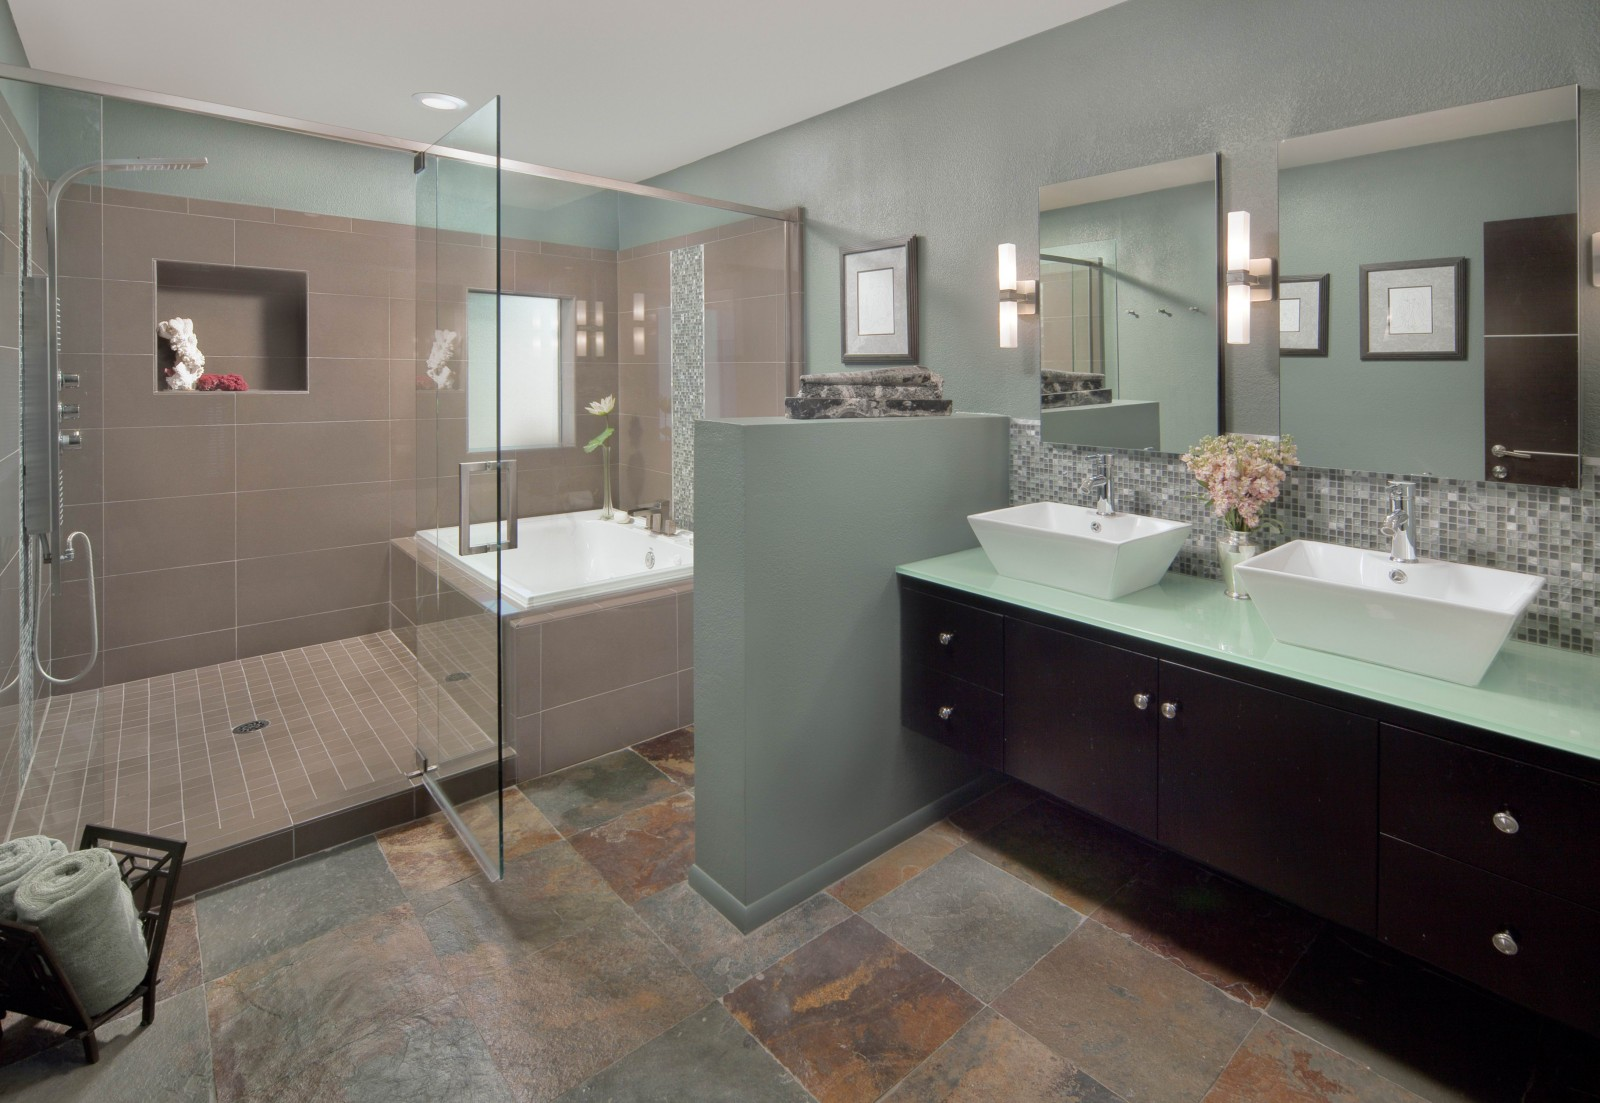 Revamping your master bathroom peter mickus Master bathroom remodel ideas